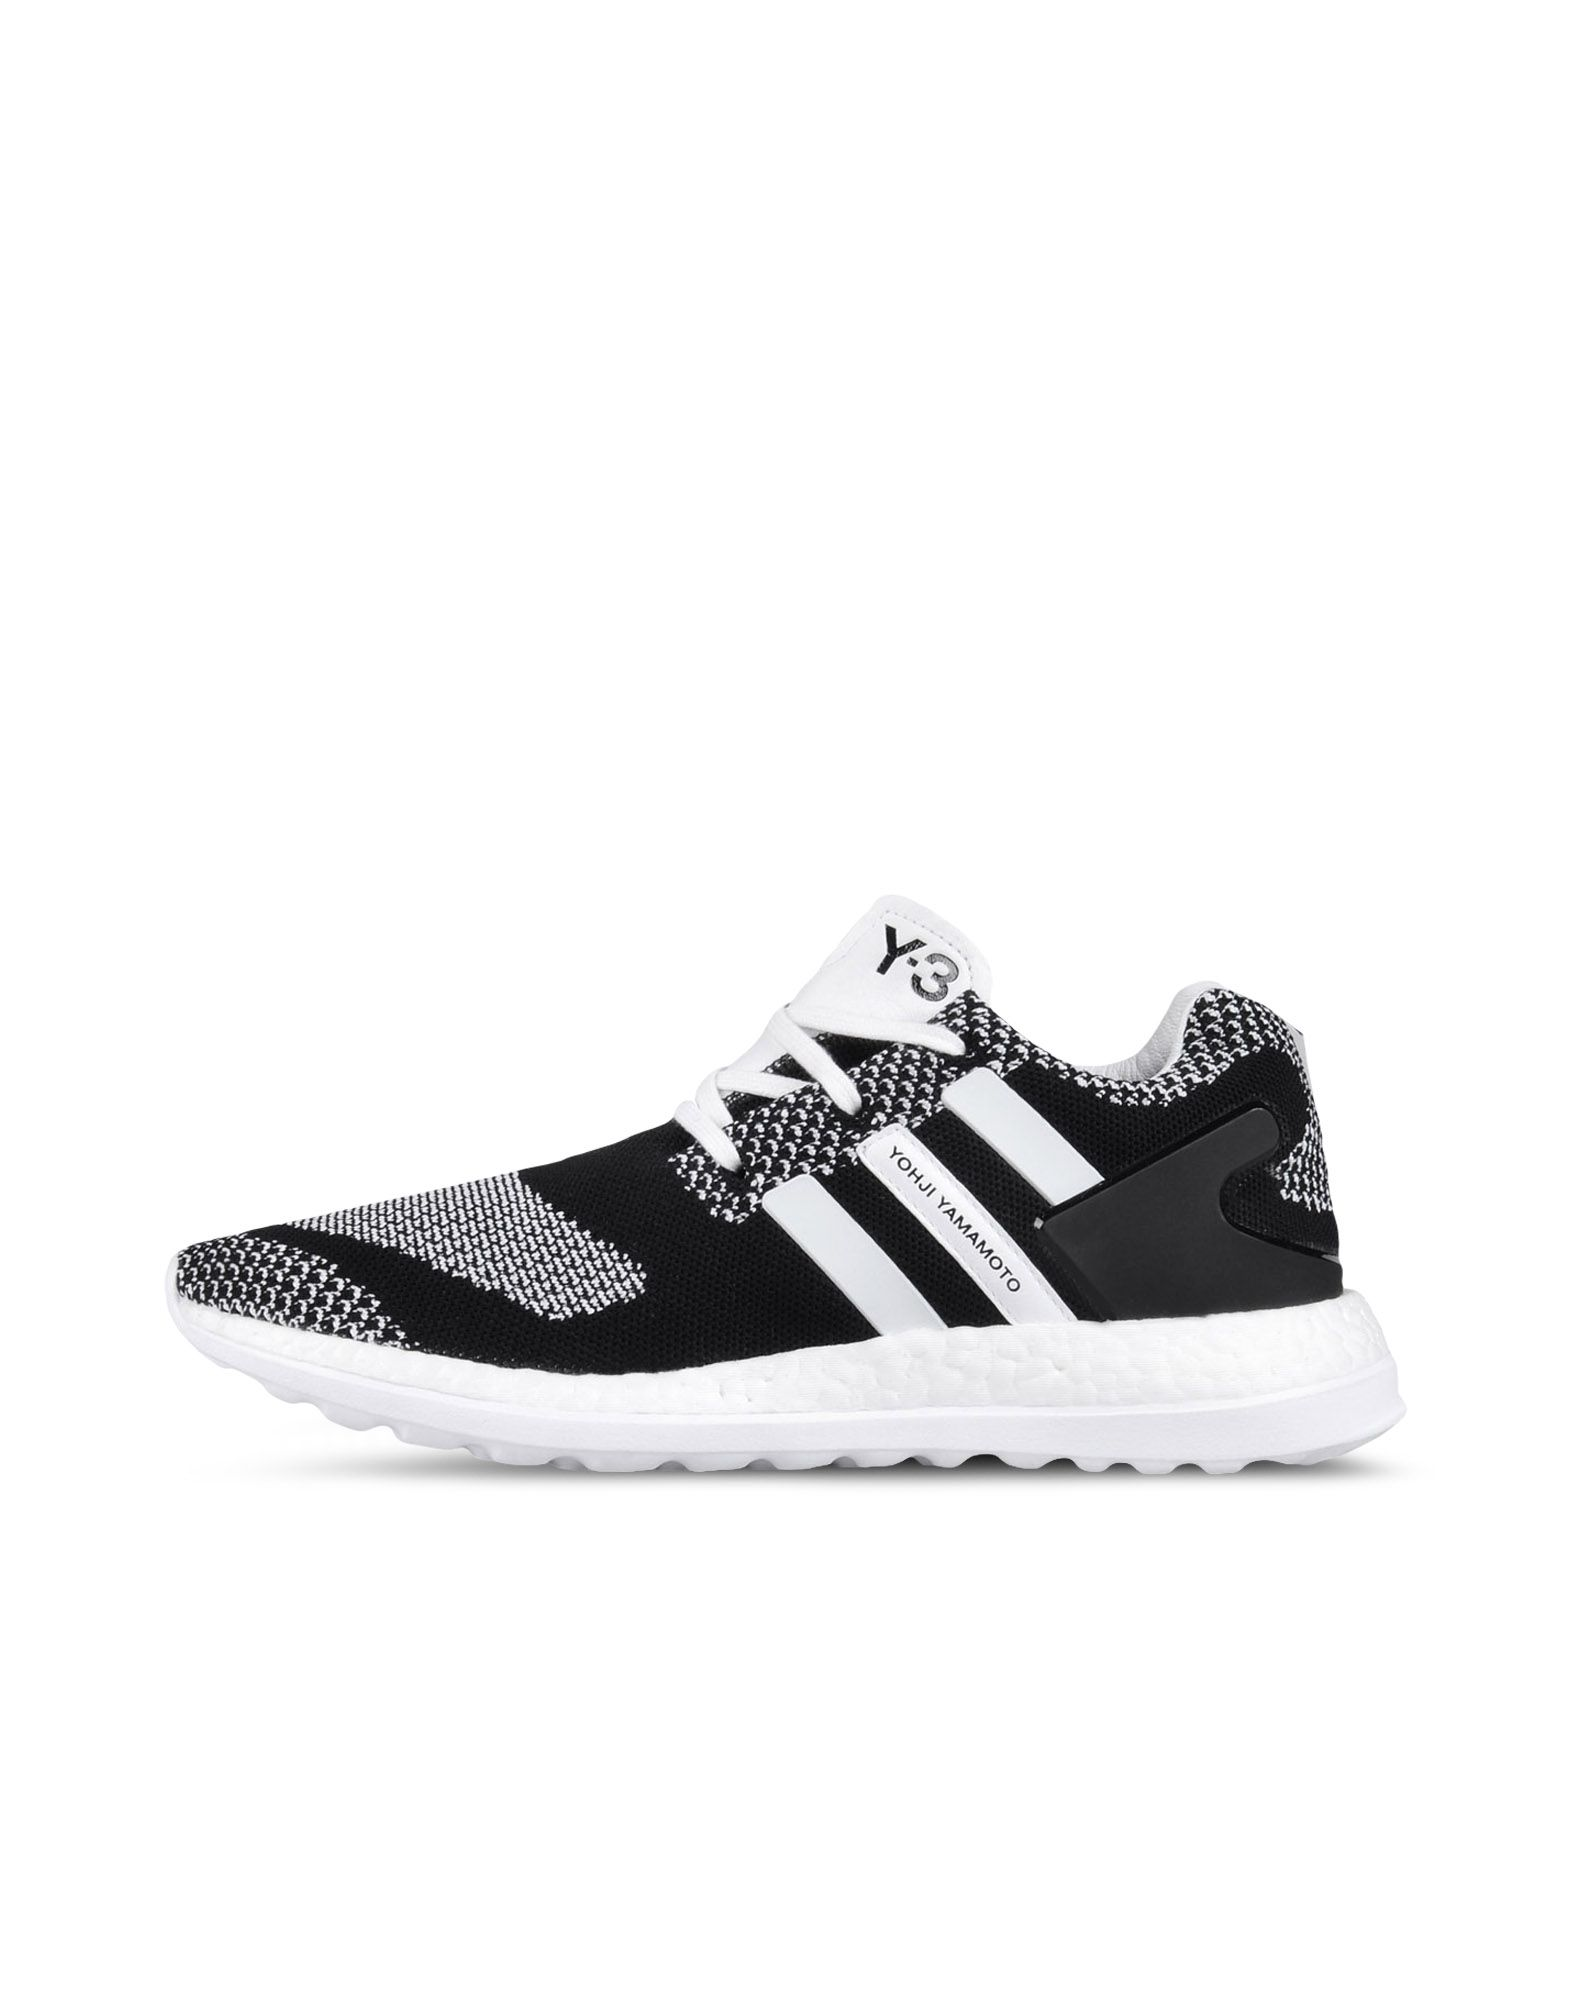 1d928417d515a ... Y-3 Y-3 PURE BOOST ZG KNIT Sneakers Man ...